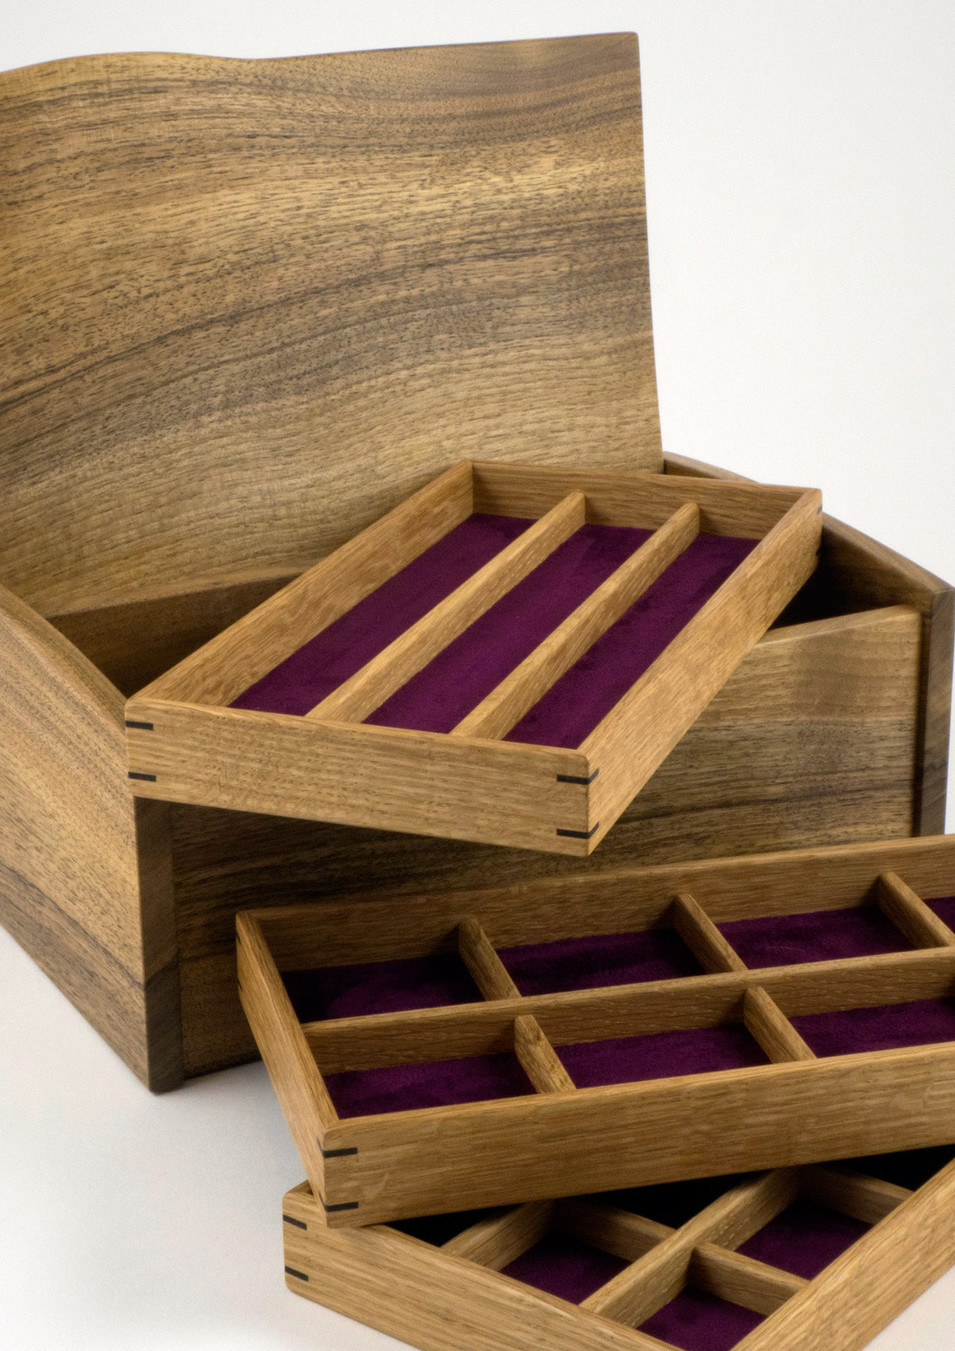 Three lift out jewellery trays